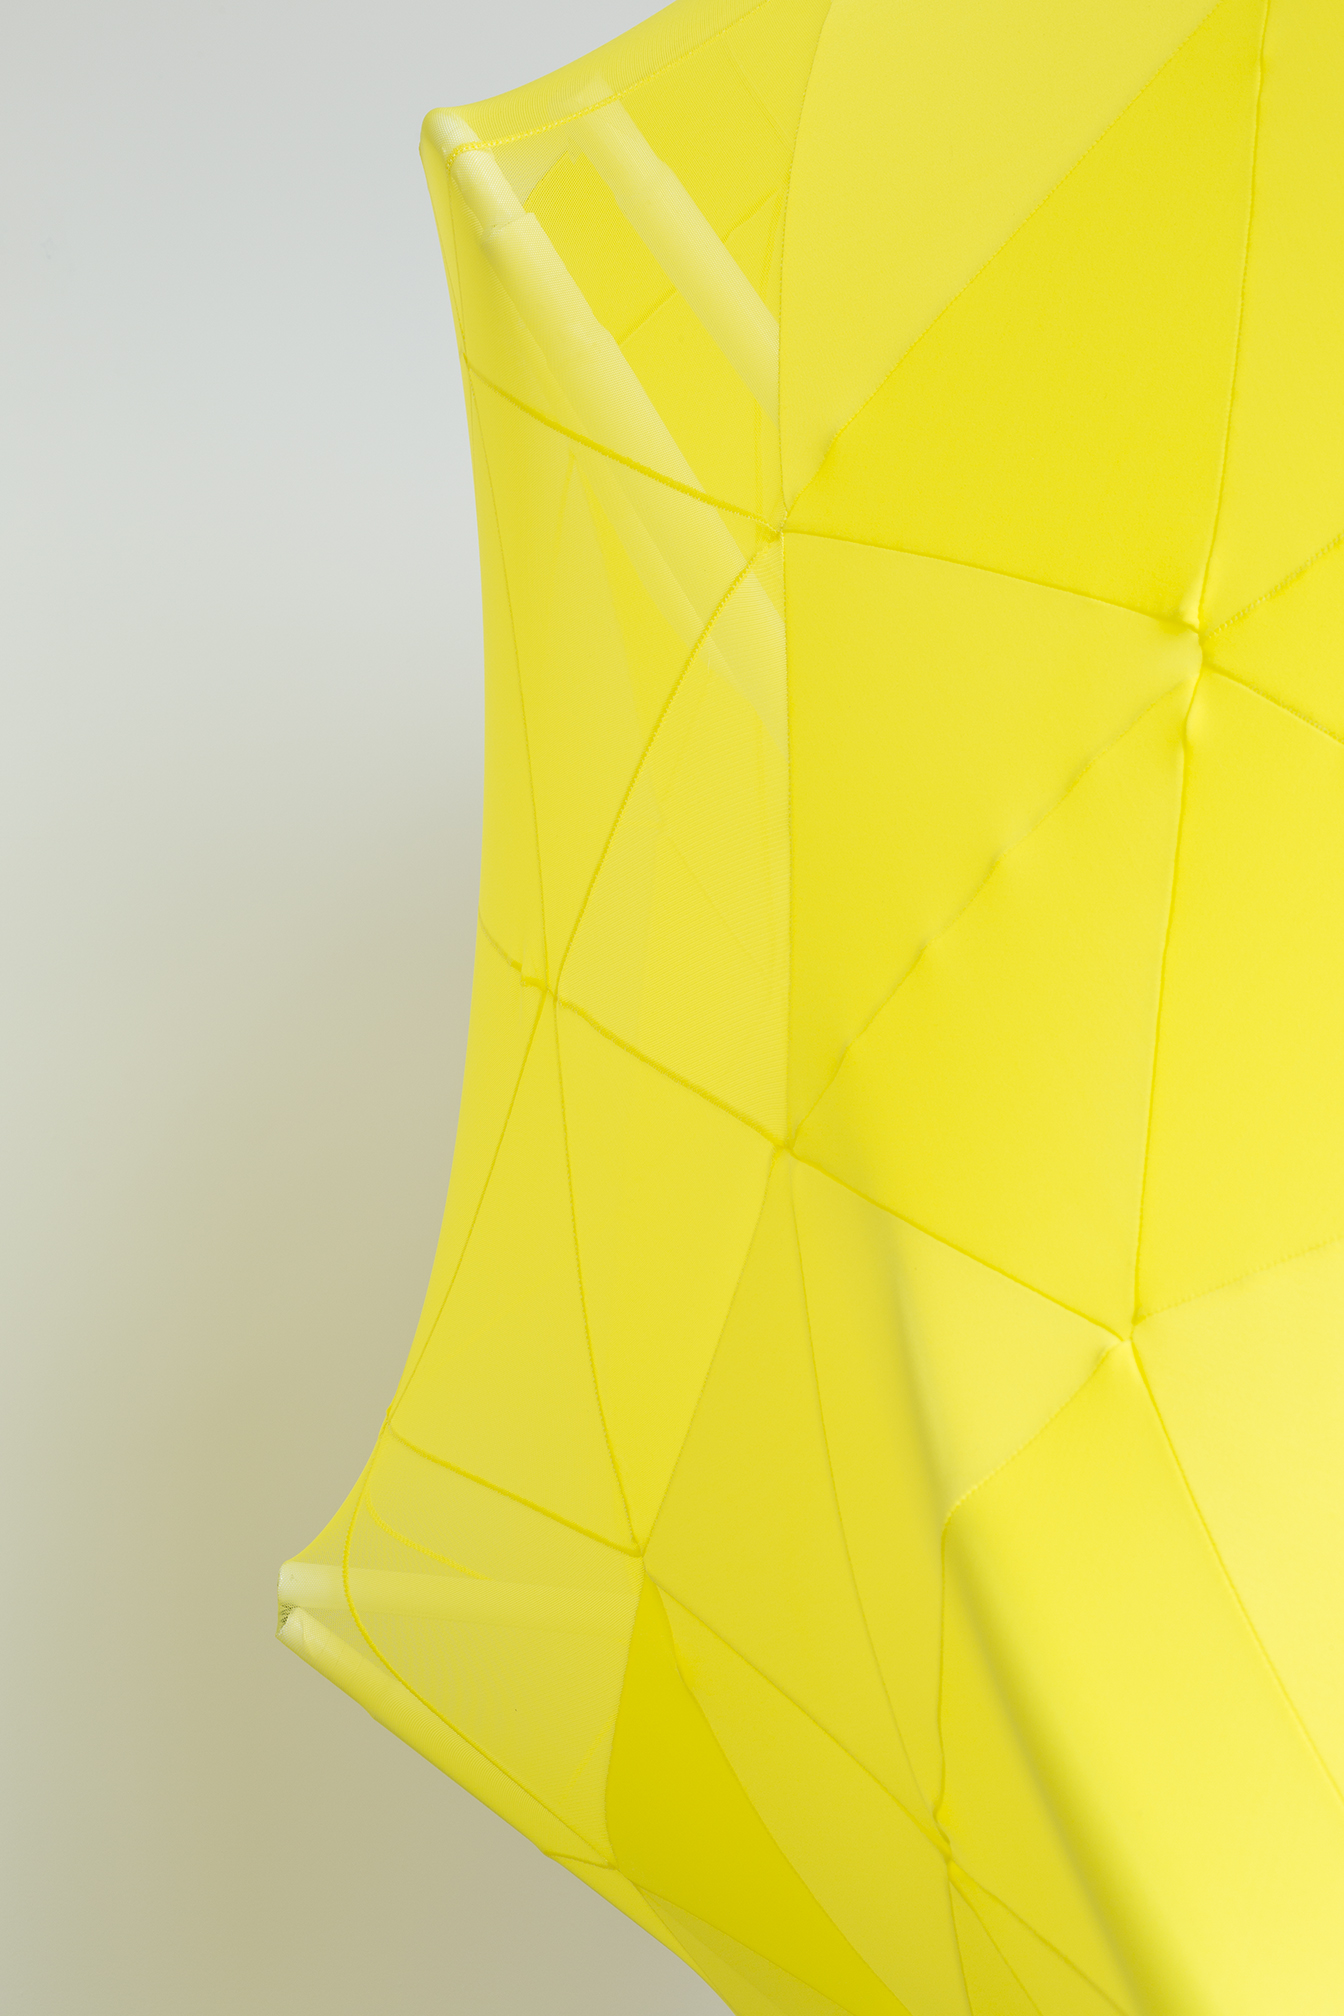 Melanie Irwin, Hemispherical Envelope (Yellow, White), 2017, Found modified metal frames, lycra, cotton twine, electrical tape